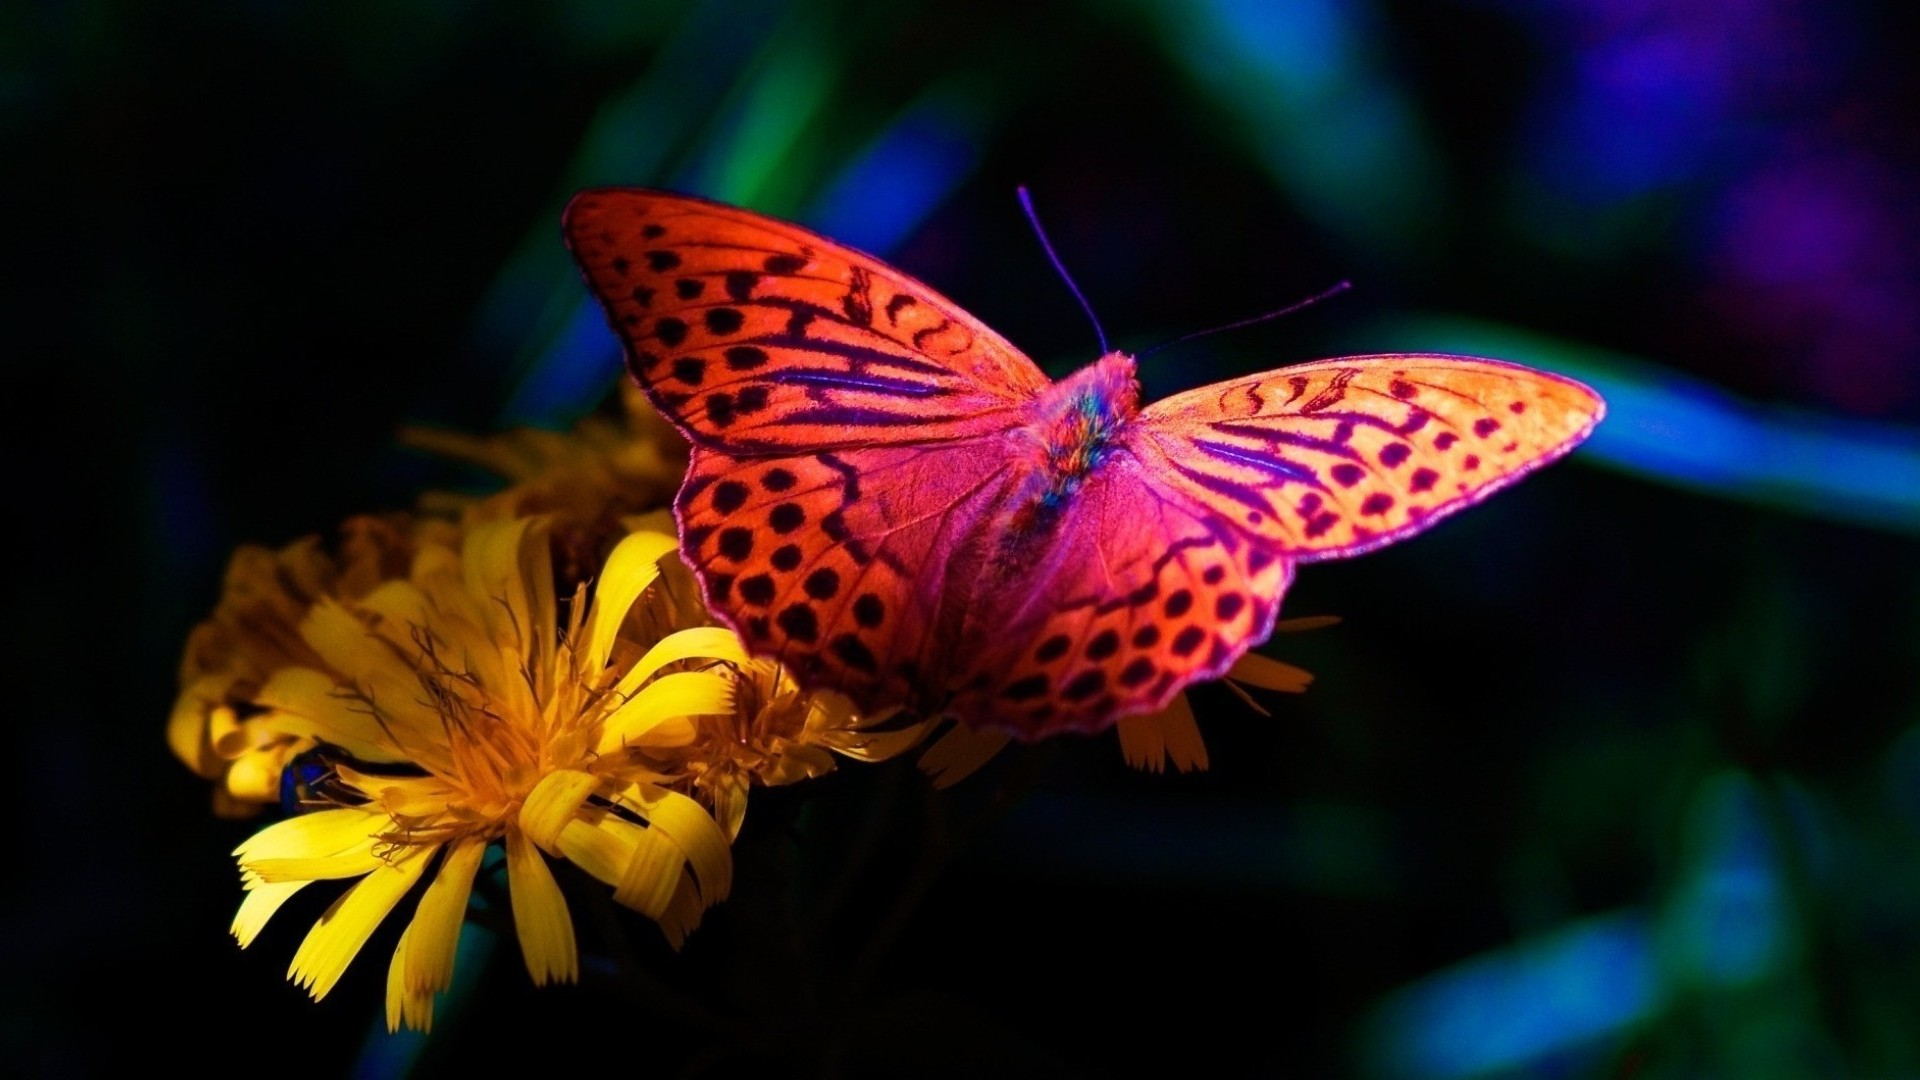 hd wallpapers of butterfly